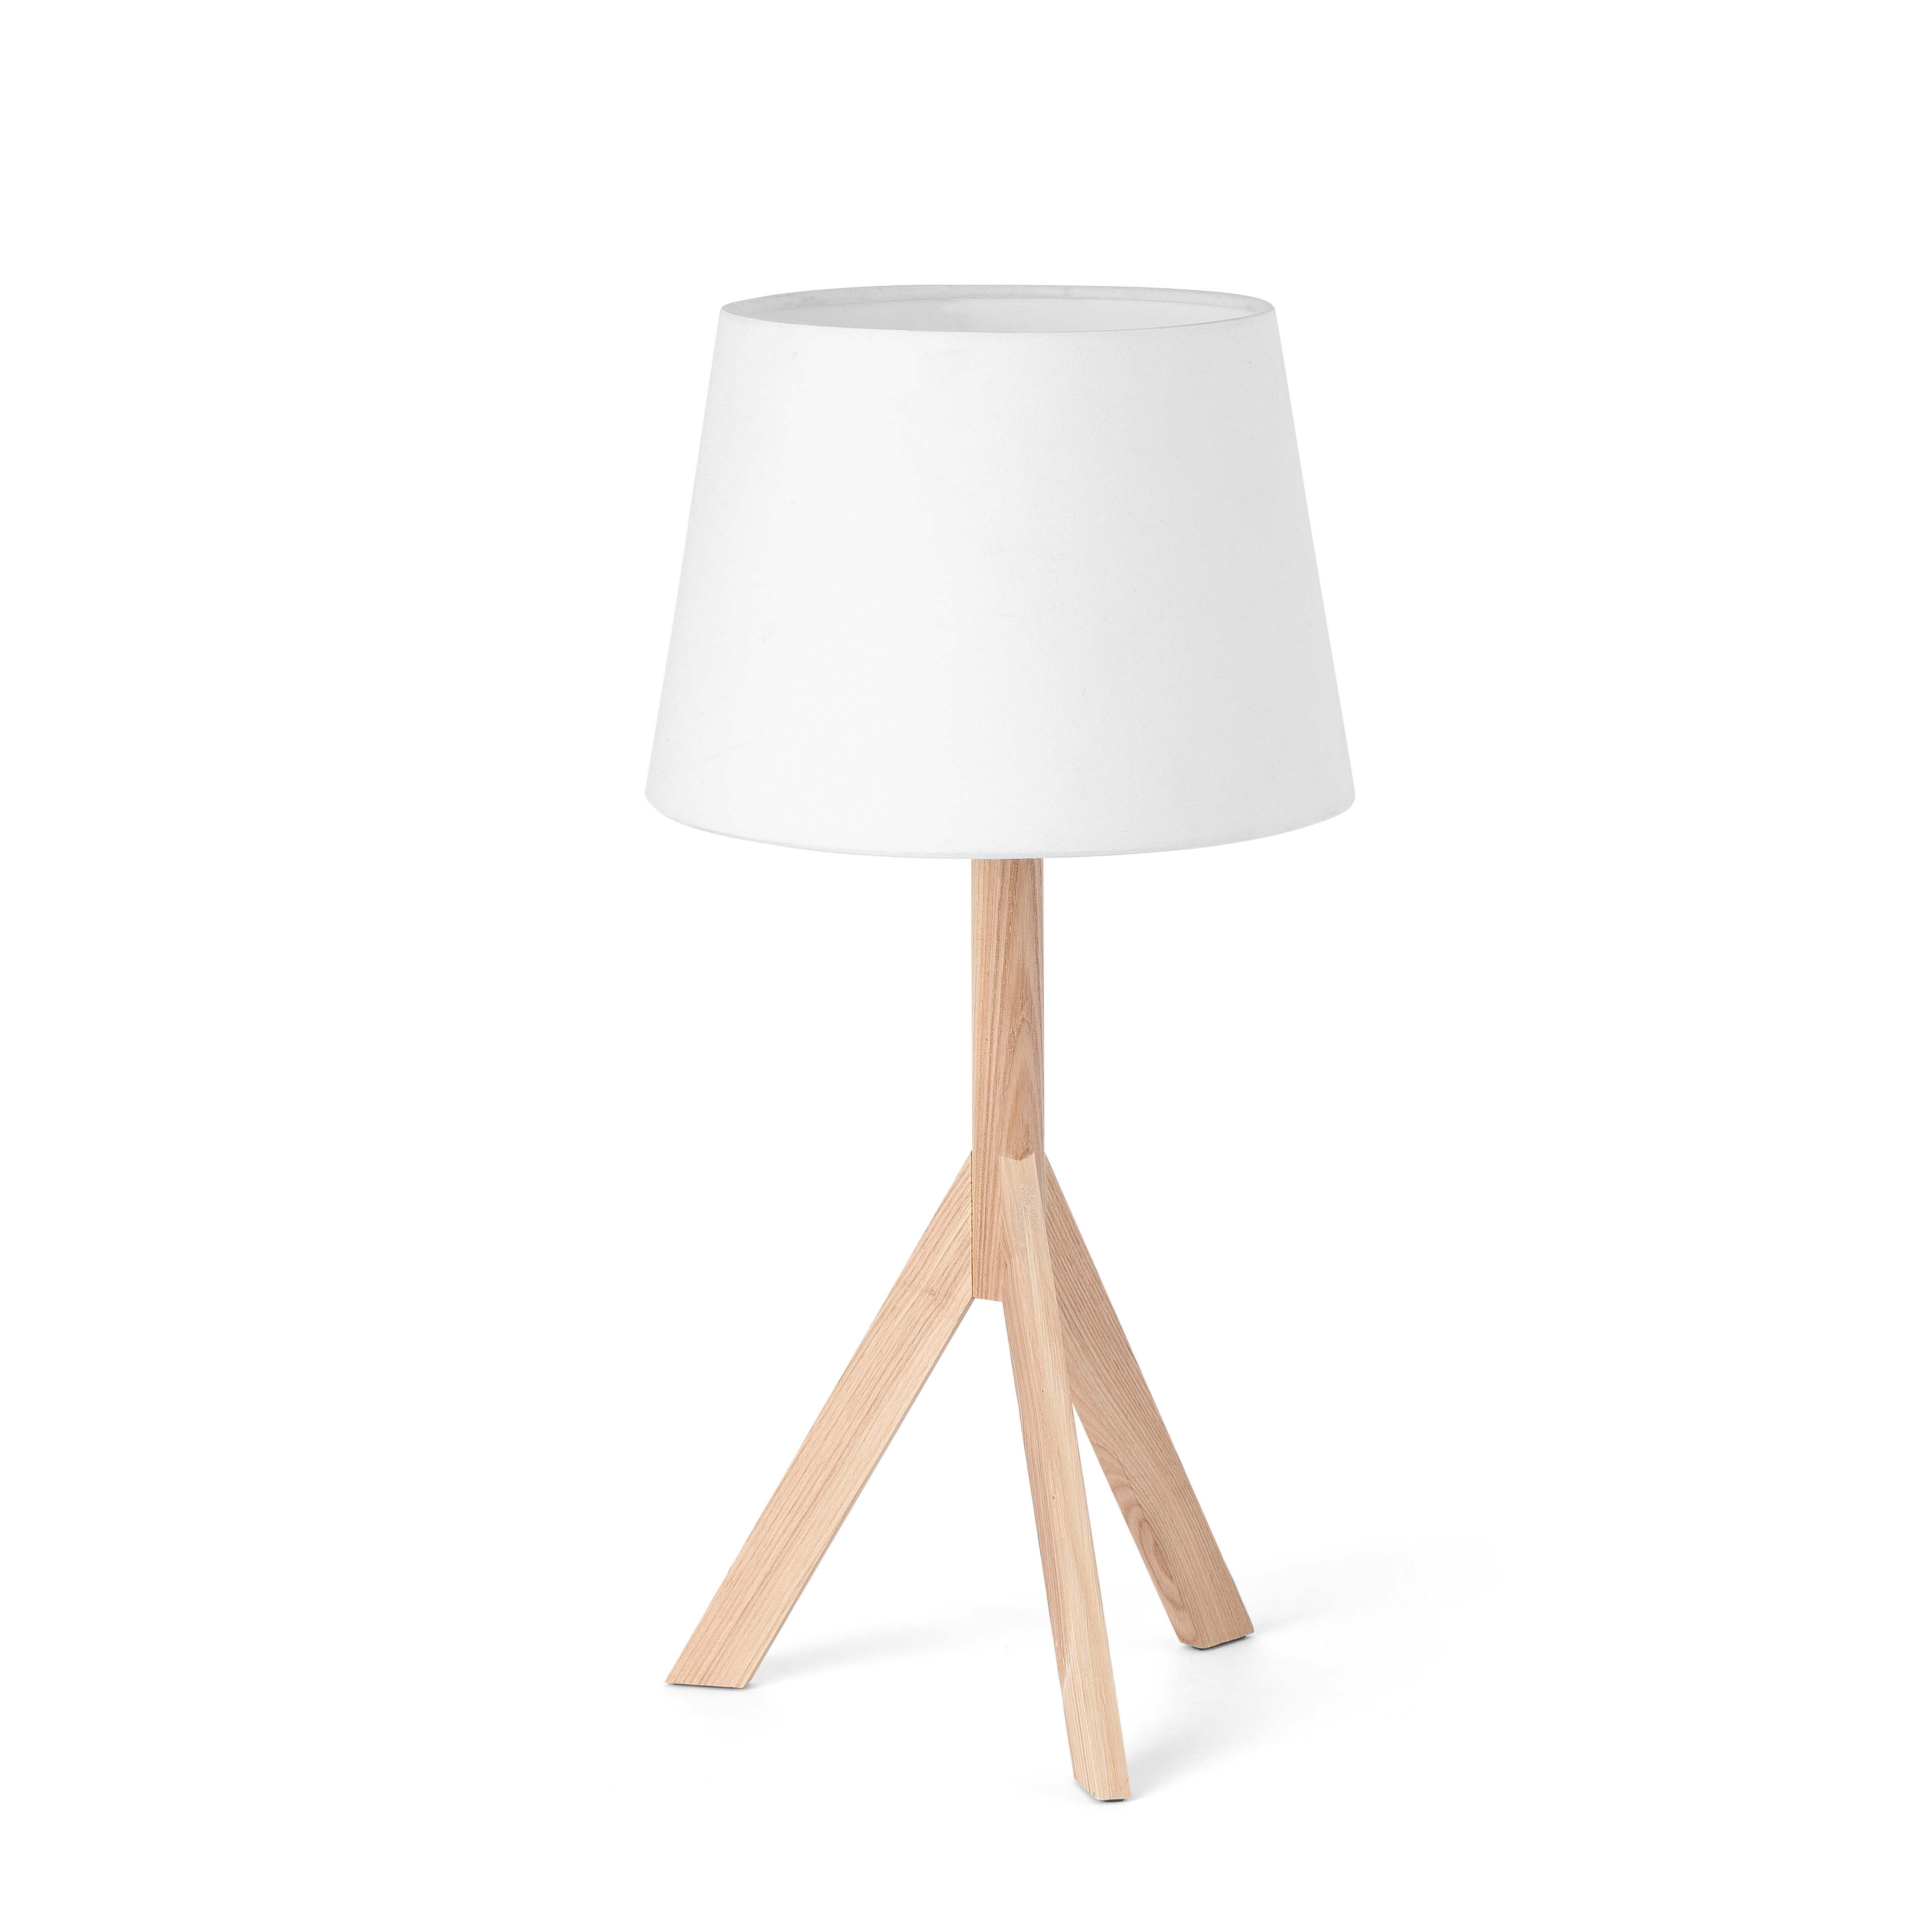 Hat Table Lamp E14 MAX 40W - Structure Wood lampshade White Fabric